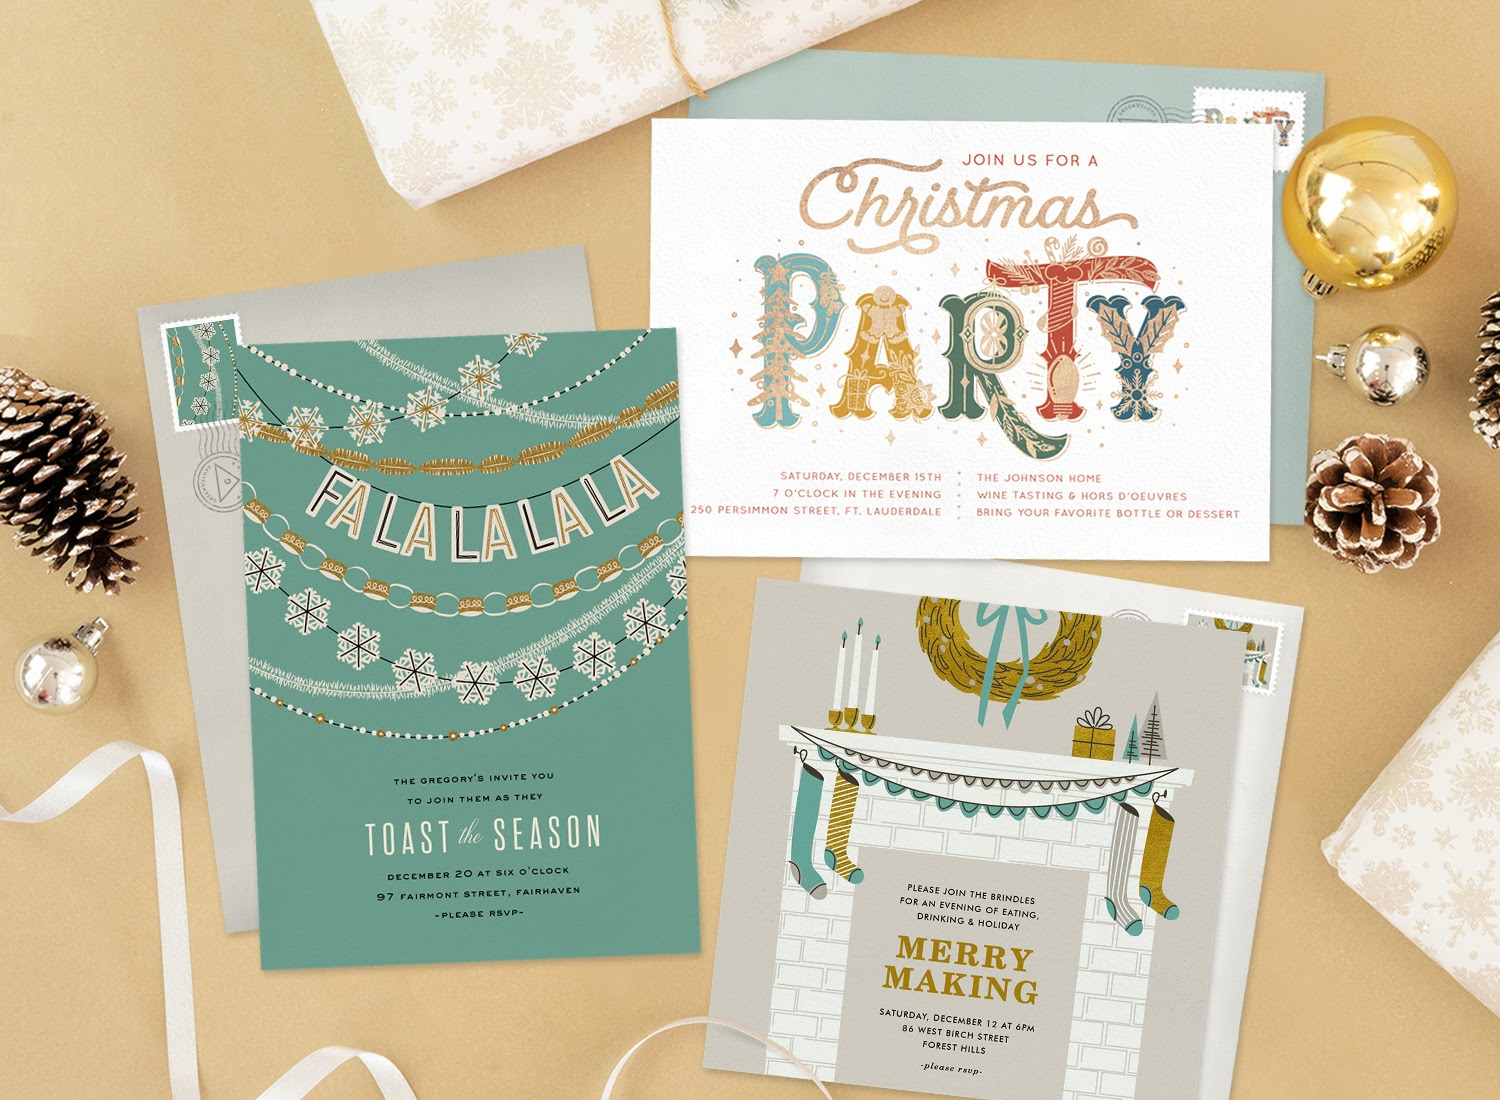 Three holiday party invitations surrounded by ornaments, pine cones, and presents